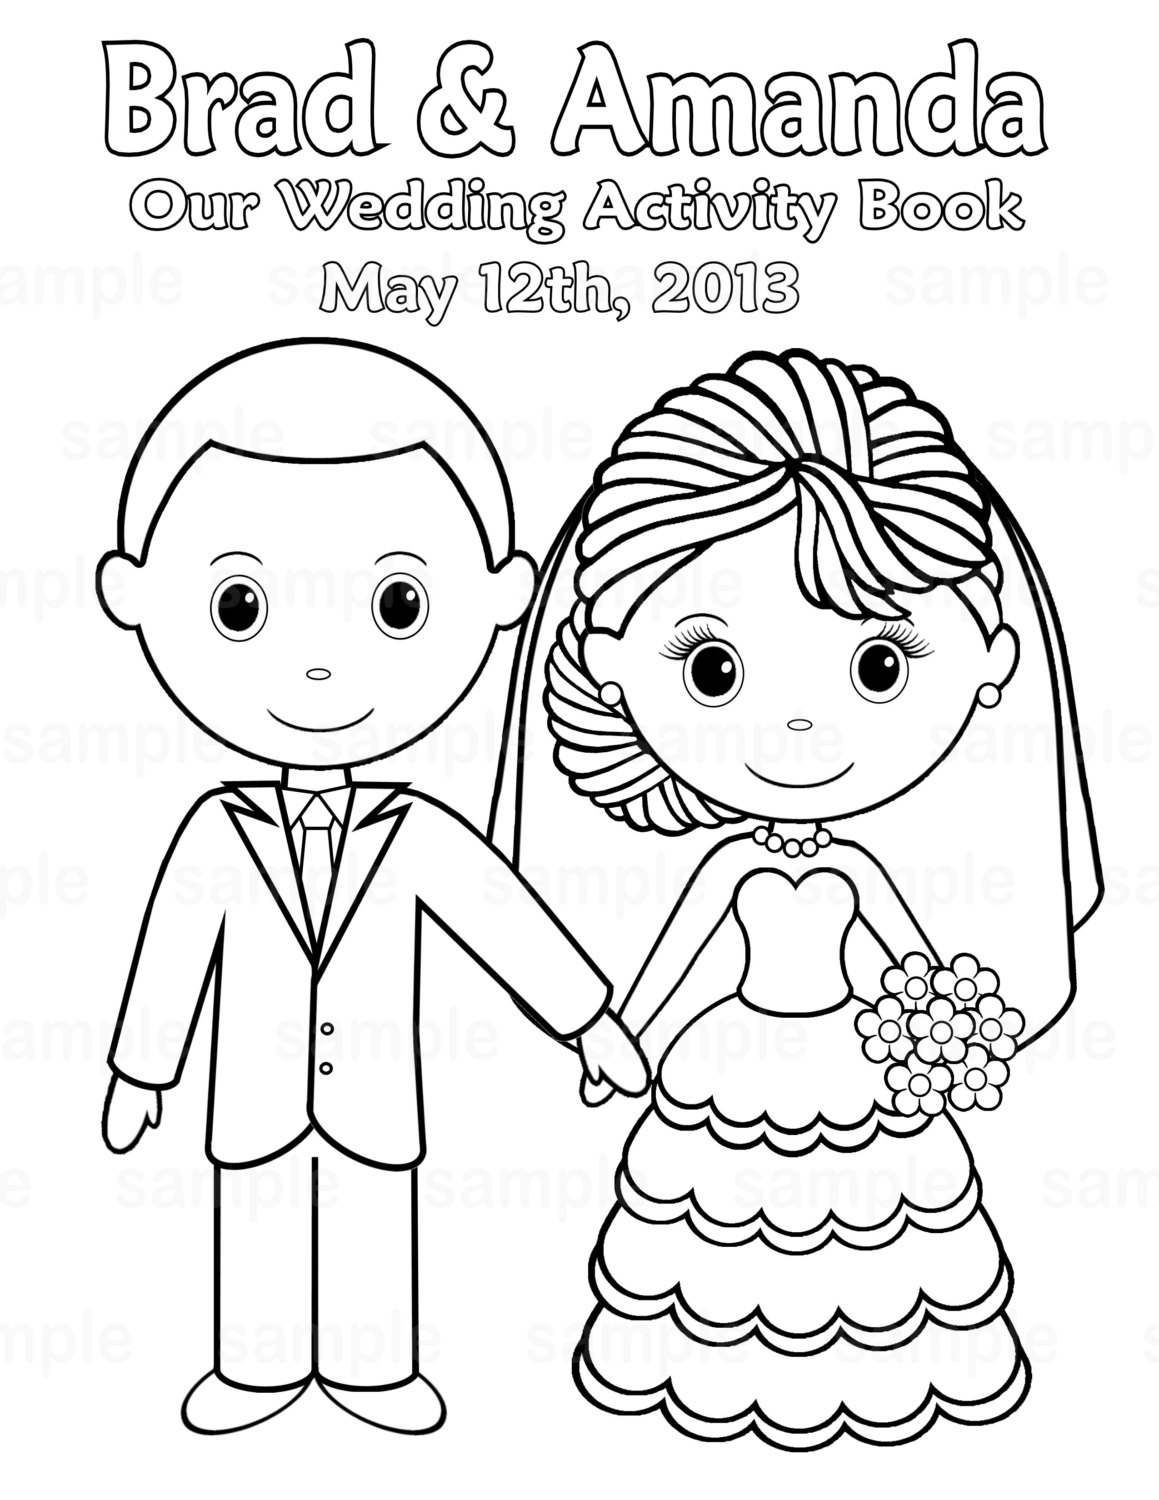 Coloring Pages : Kidsing Coloring Book Fantastic Pdfkids - Free Printable Personalized Wedding Coloring Book